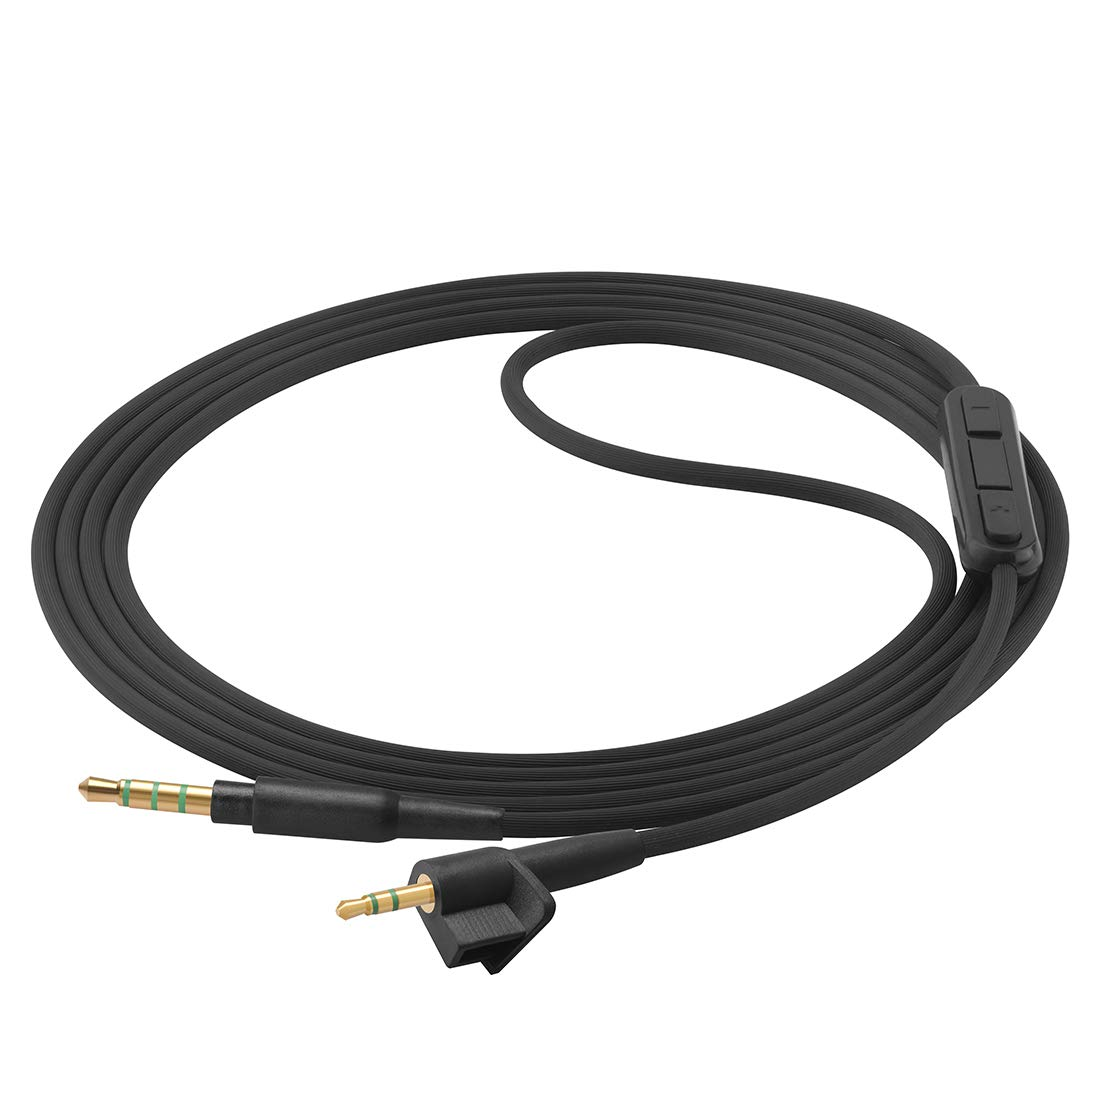 AE2i Geekria Audio Cable for Bose Around-Ear AE2 iPhone Works with Apple Device Android AE2w Headphones Replacement Cable with Inline Mic//Audio Cord with Volume Control and Microphone